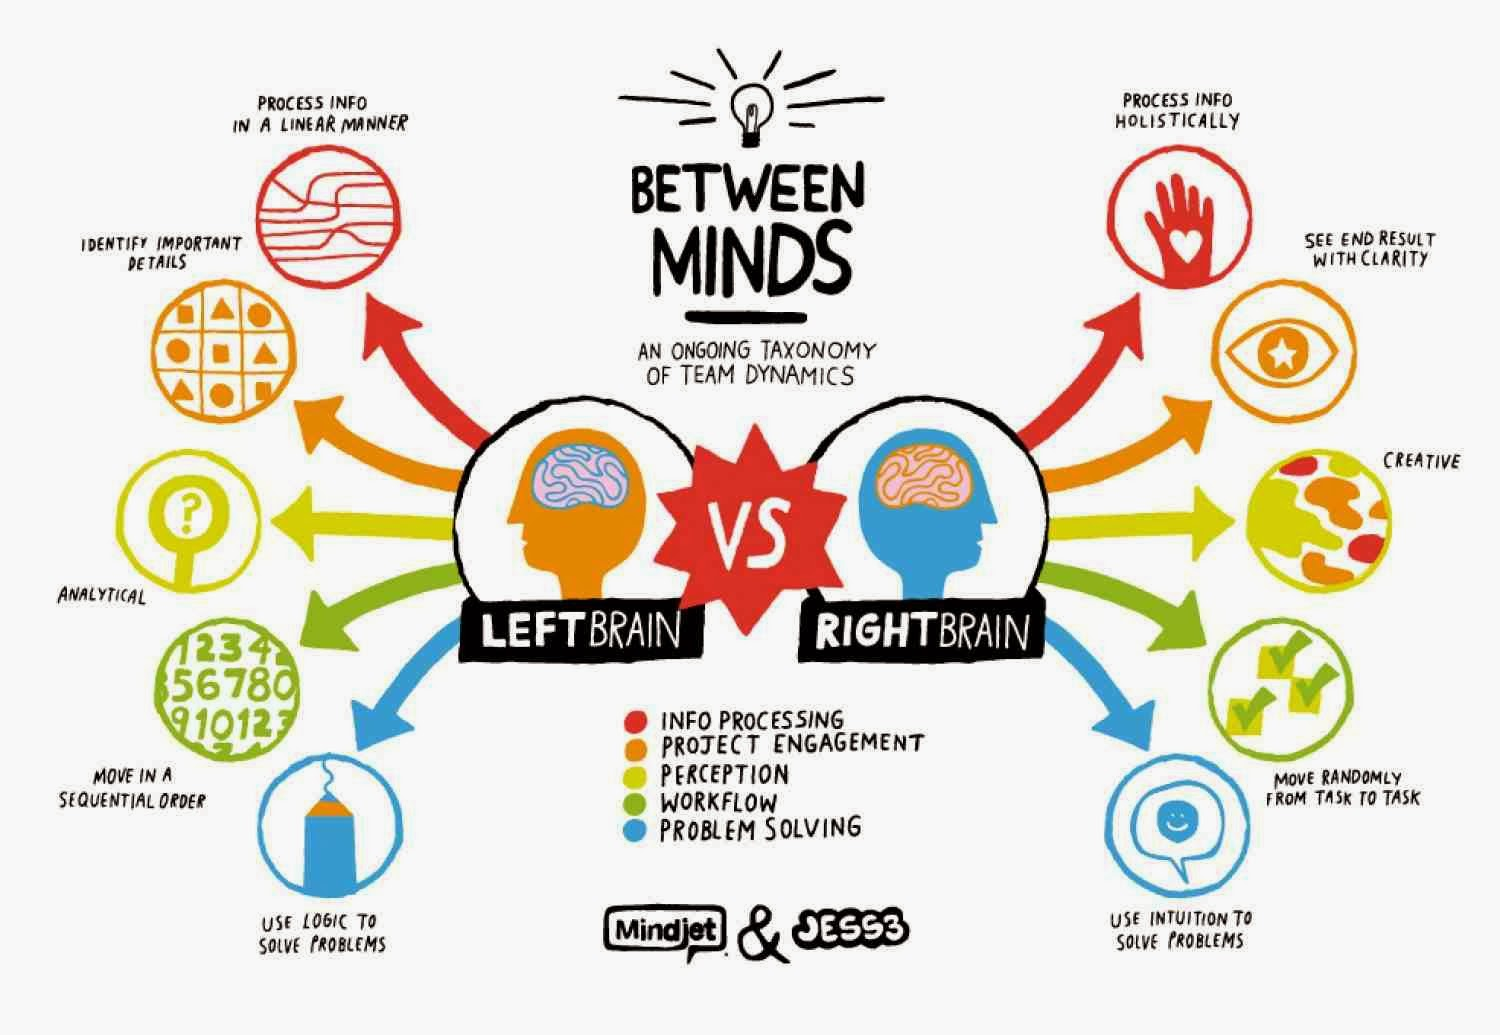 left versus right brain and how This is an idea of two halves (pun intended): firstly that there is a difference between left brain thinking and right brain thinking, and secondly that individuals differ in the extent to which they favour either the 'left brain' or the 'right brain'.